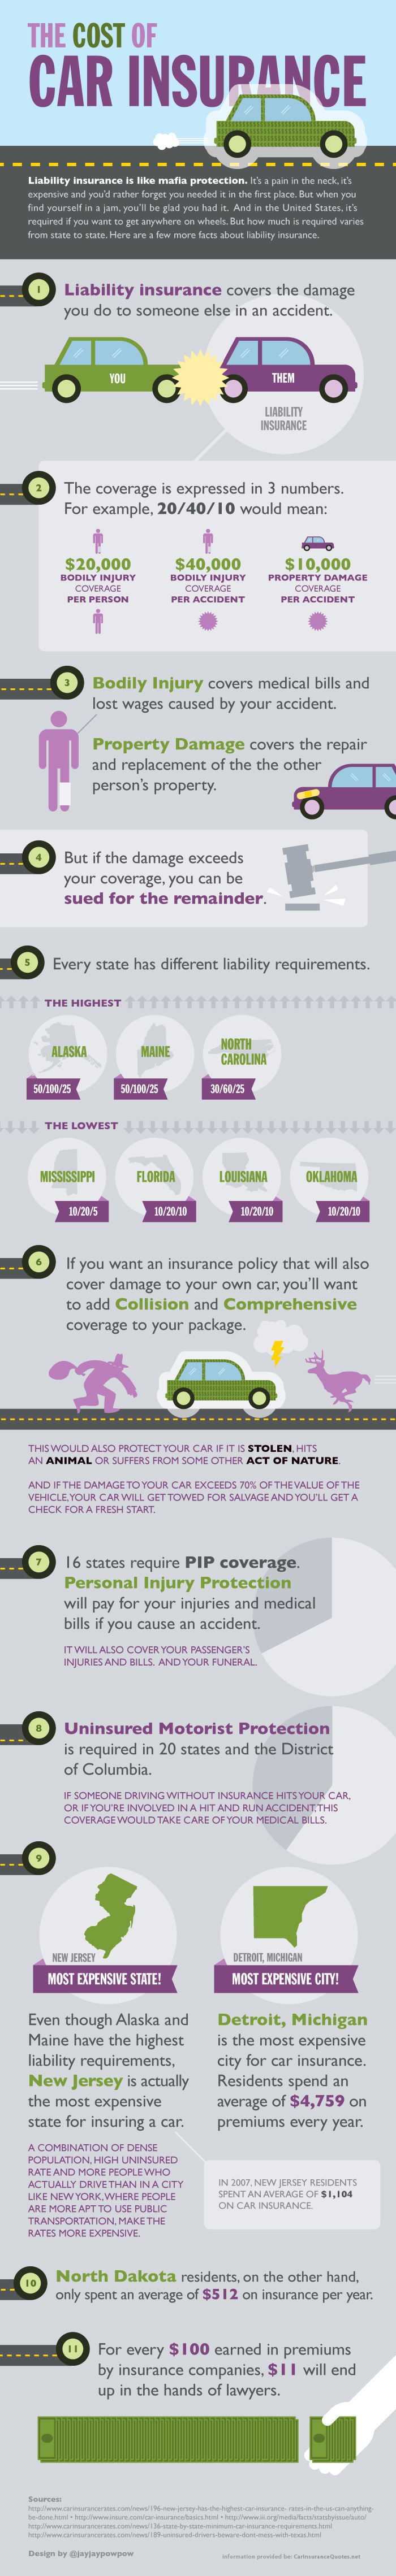 car-insurance-cost-infographic